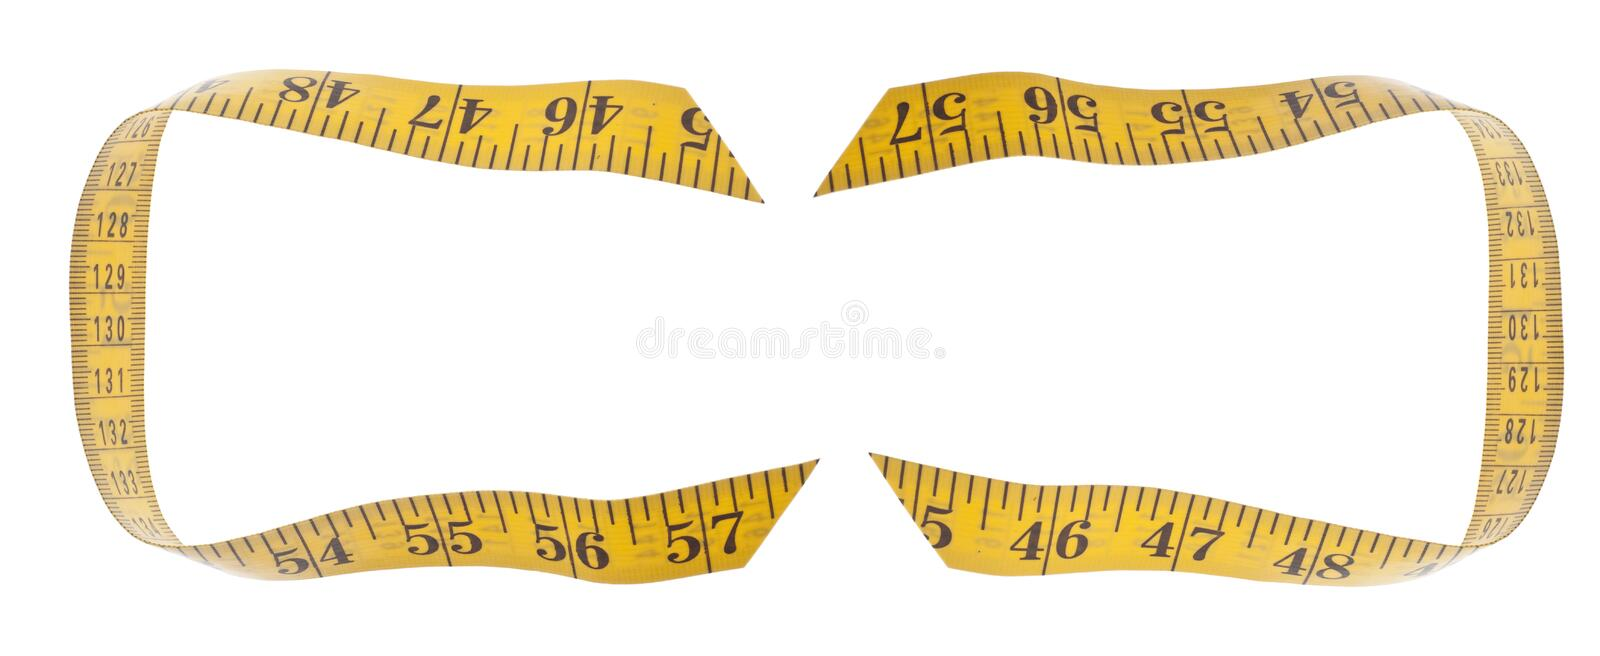 Measuring Tape Diet Concept Border Background. Isolated on White with a Clipping Path royalty free stock image